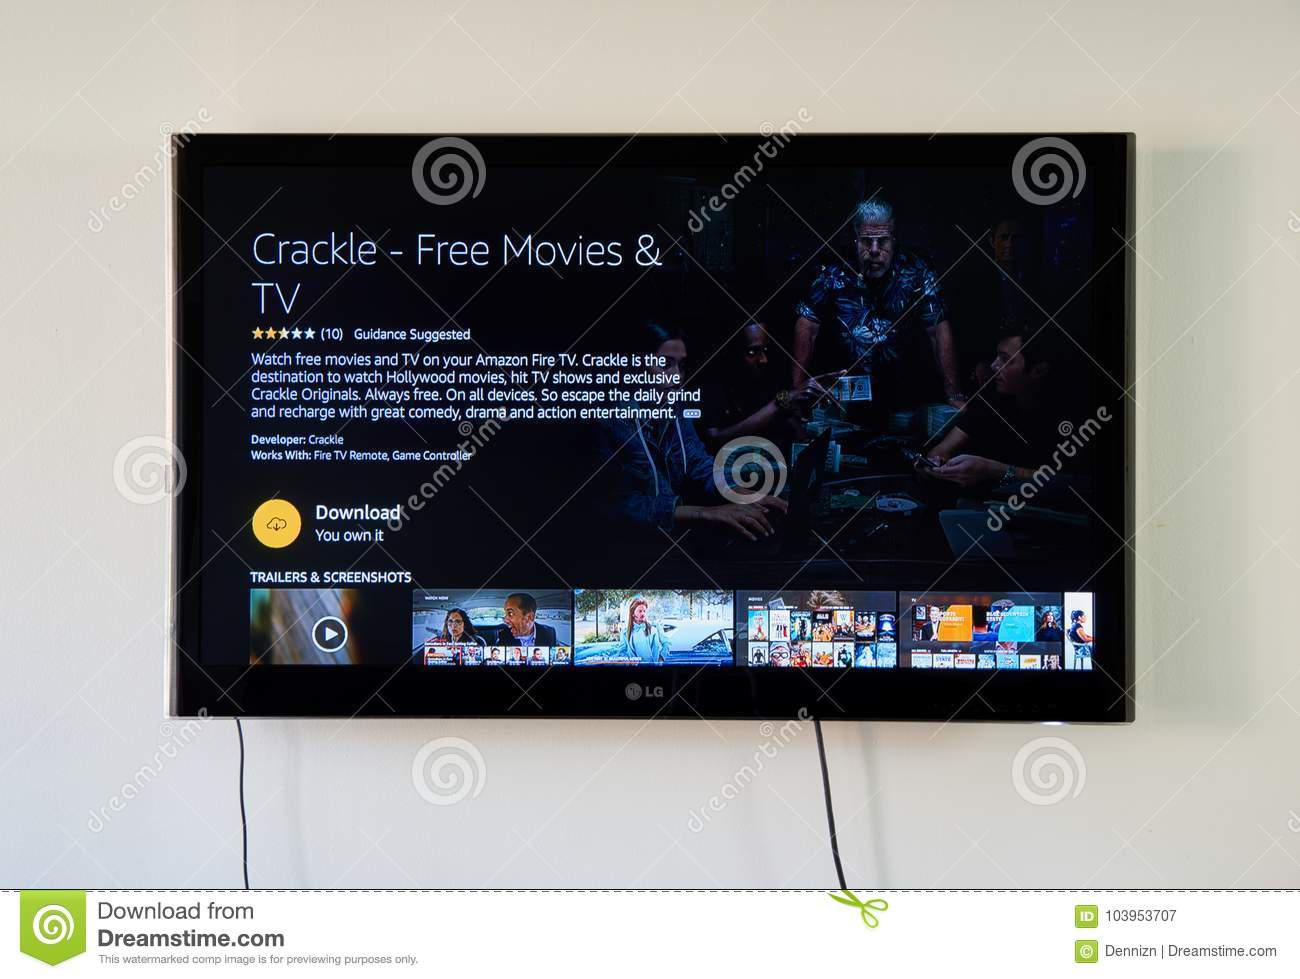 Crackle Download App Page On LG TV Screen  Editorial Photography